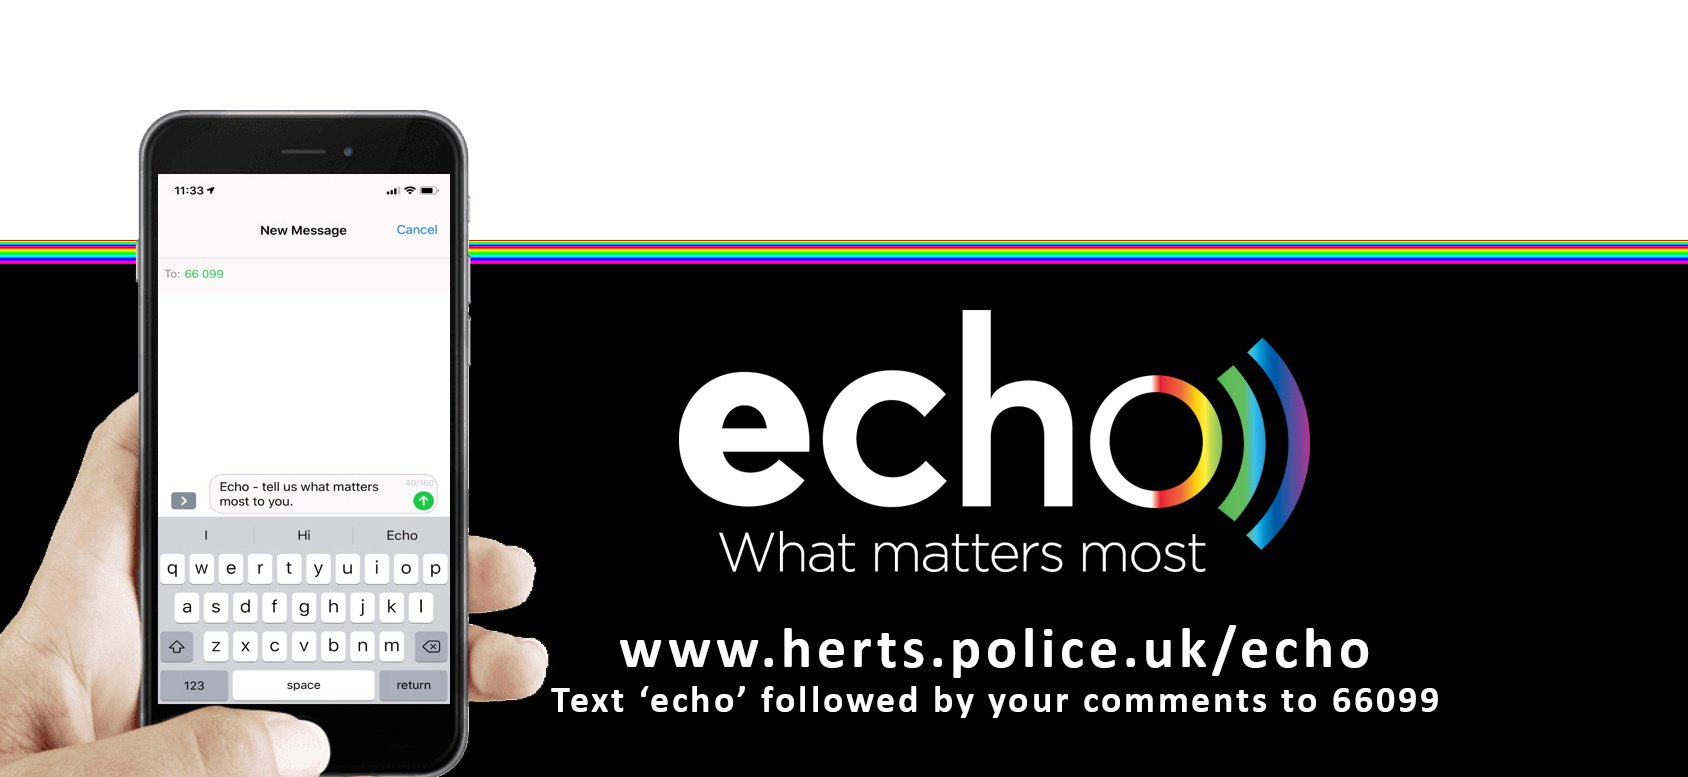 Herts Police Echo